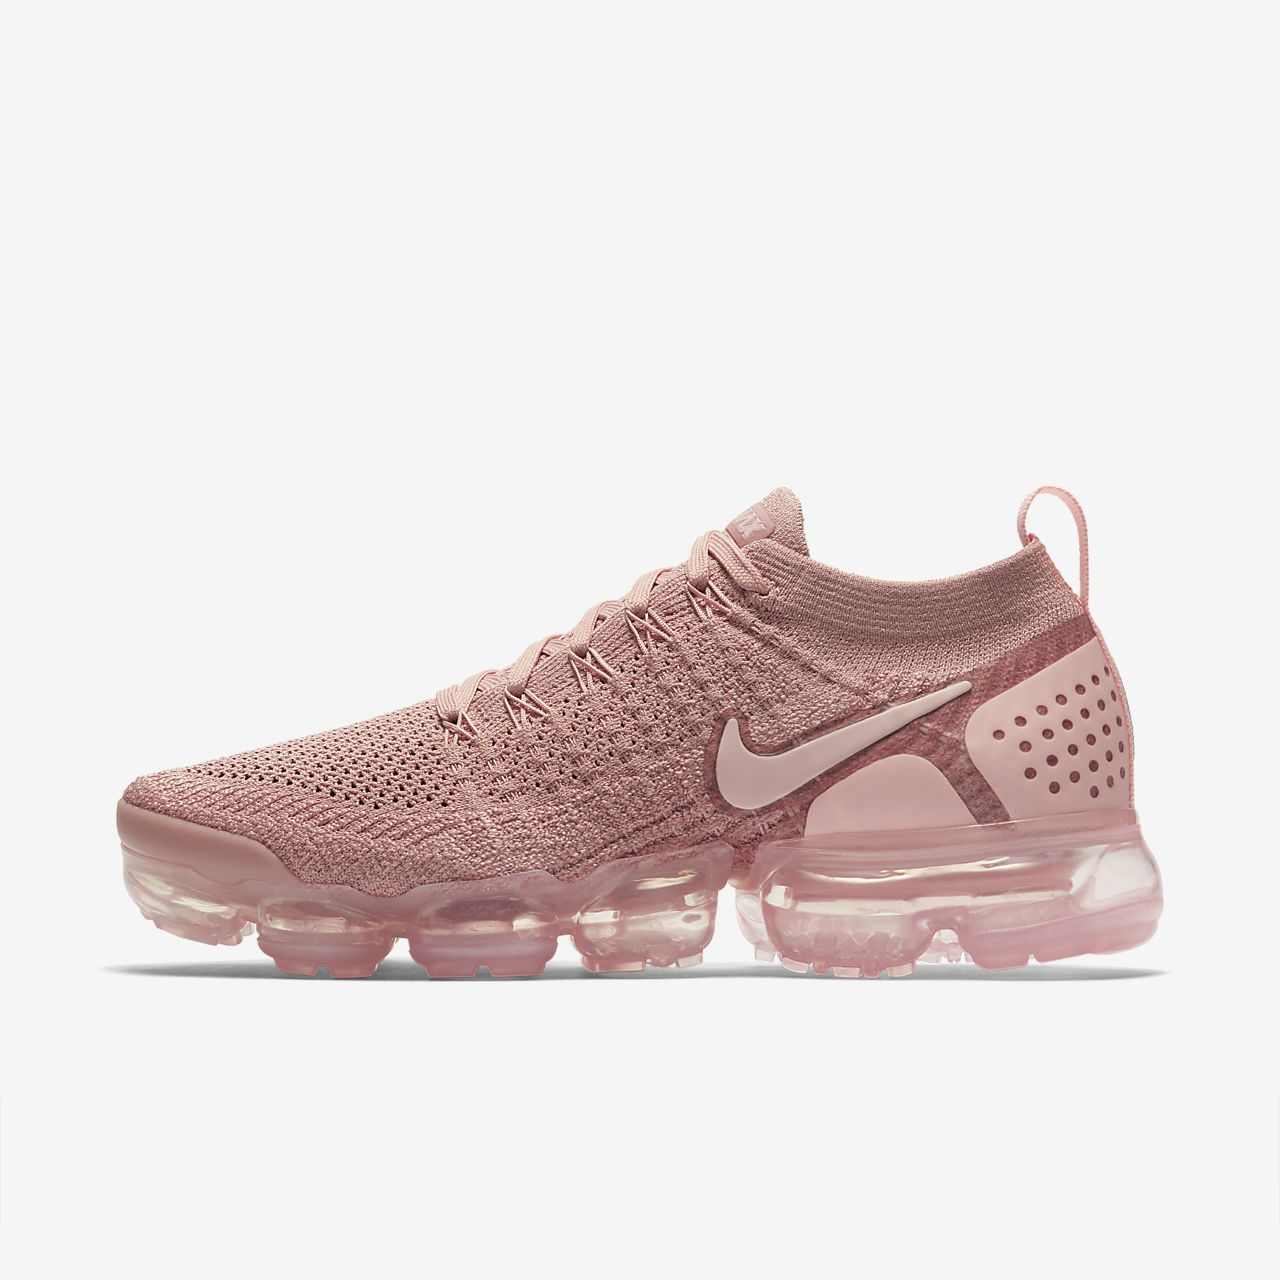 brand new d13e1 79a11 Nike Air VaporMax Flyknit 2 Women's Shoe